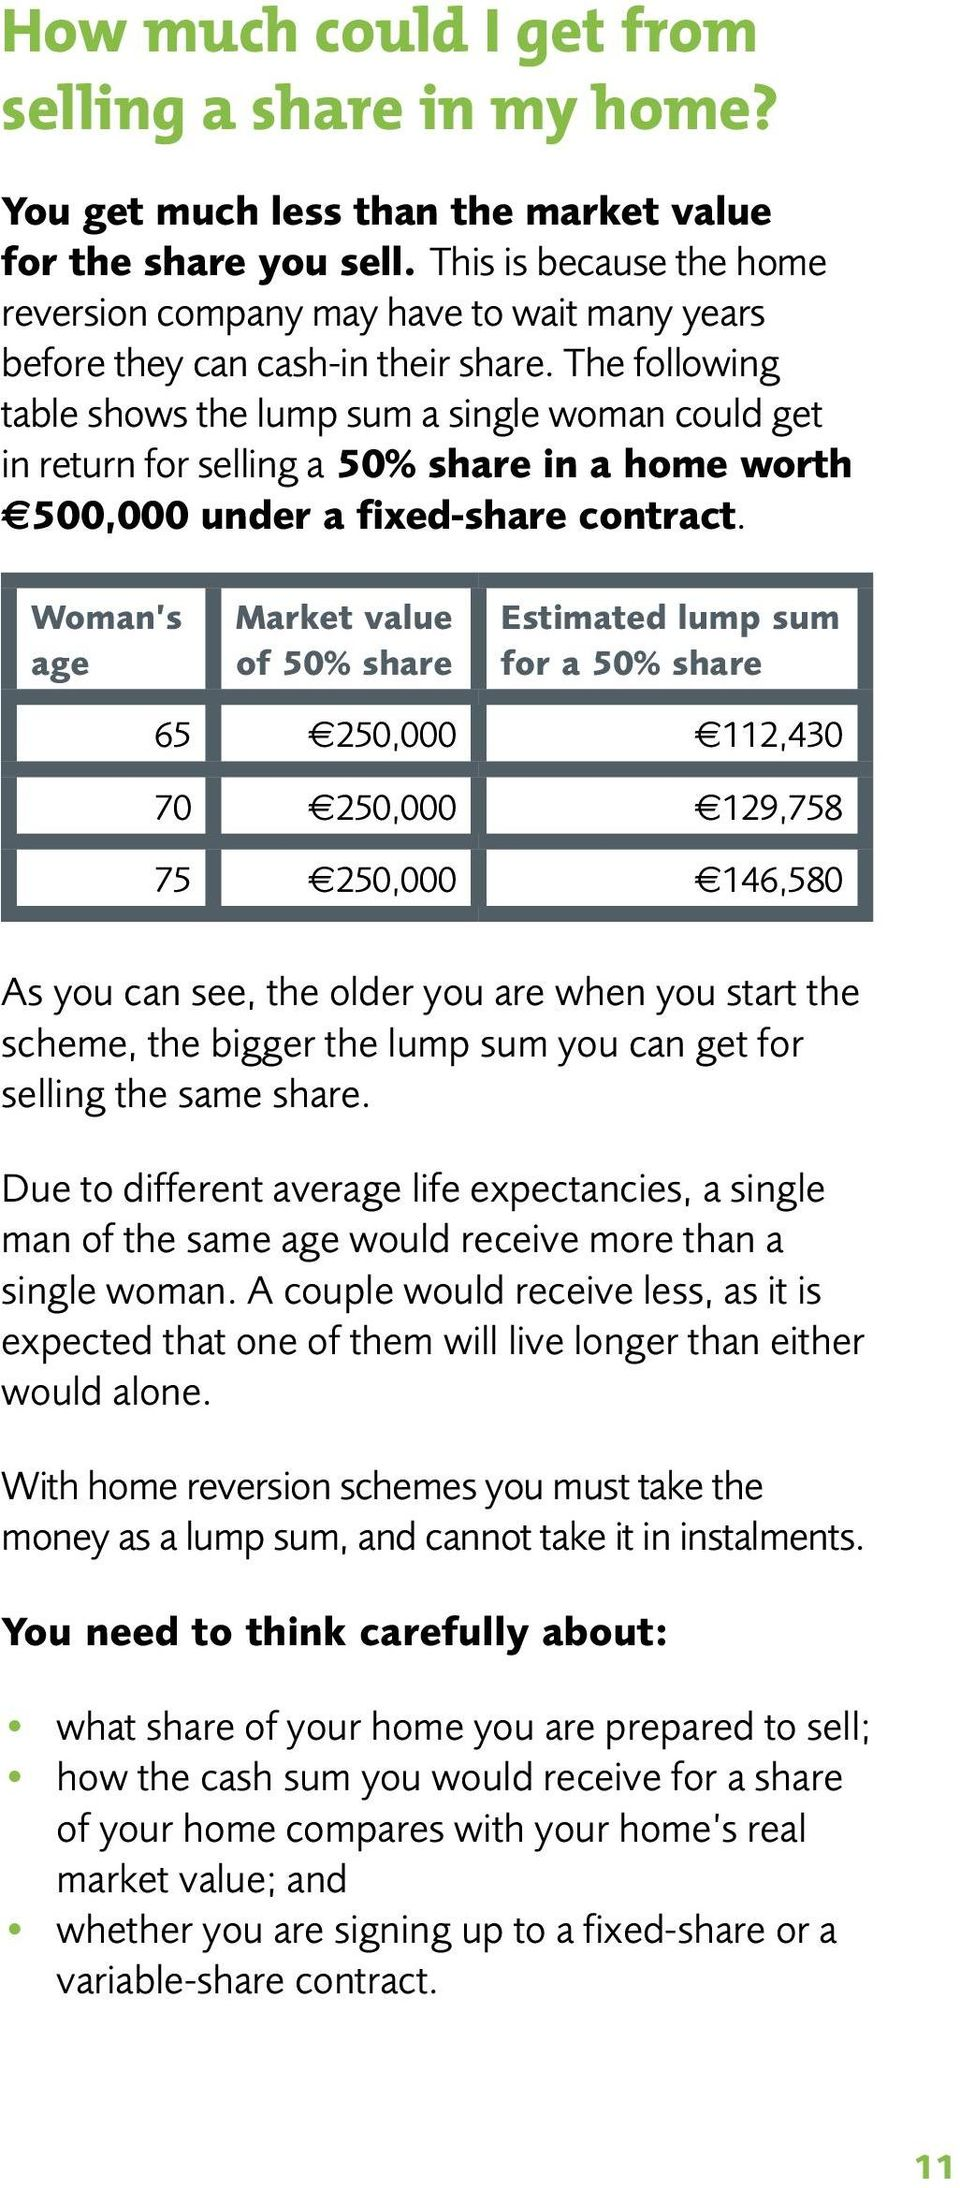 The following table shows the lump sum a single woman could get in return for selling a 50% share in a home worth 500,000 under a fixed-share contract.